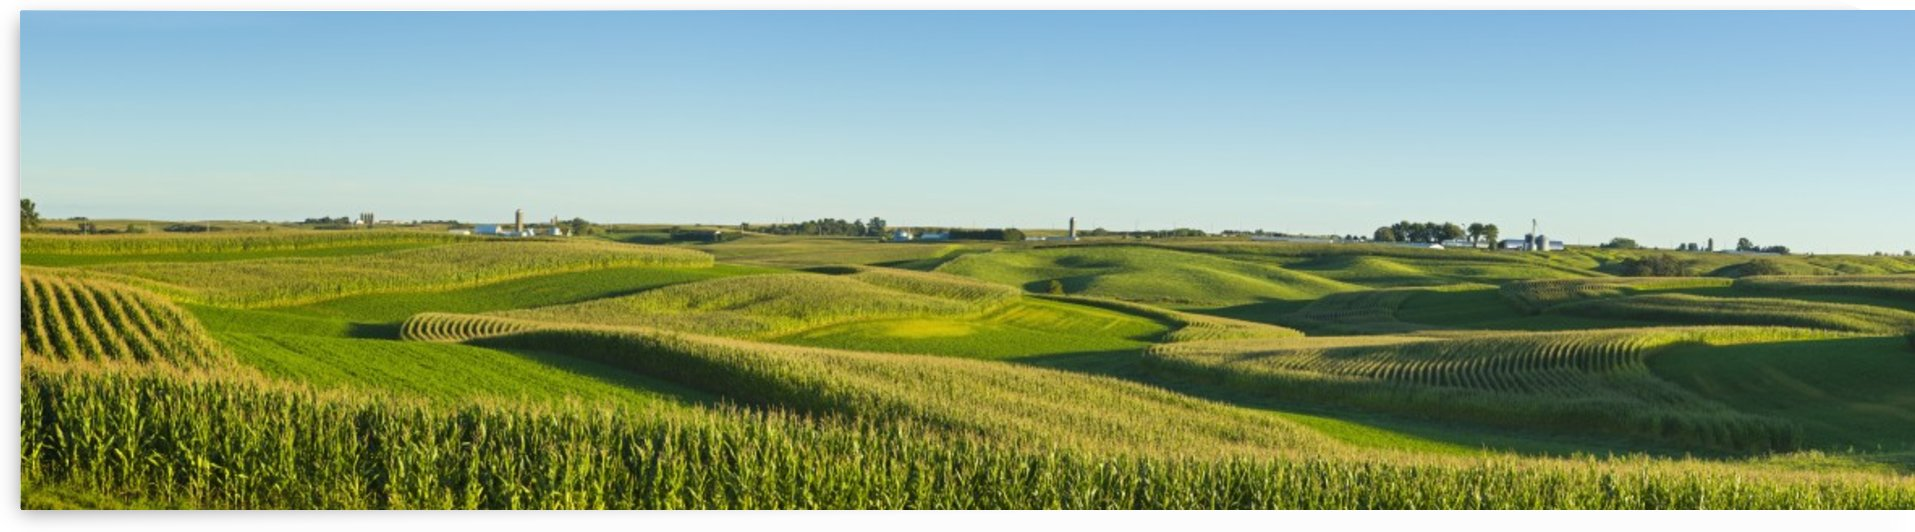 A panoramic view of alfalfa fields and corn fields that are terraced among dairy farms; Iowa, United States of America by PacificStock